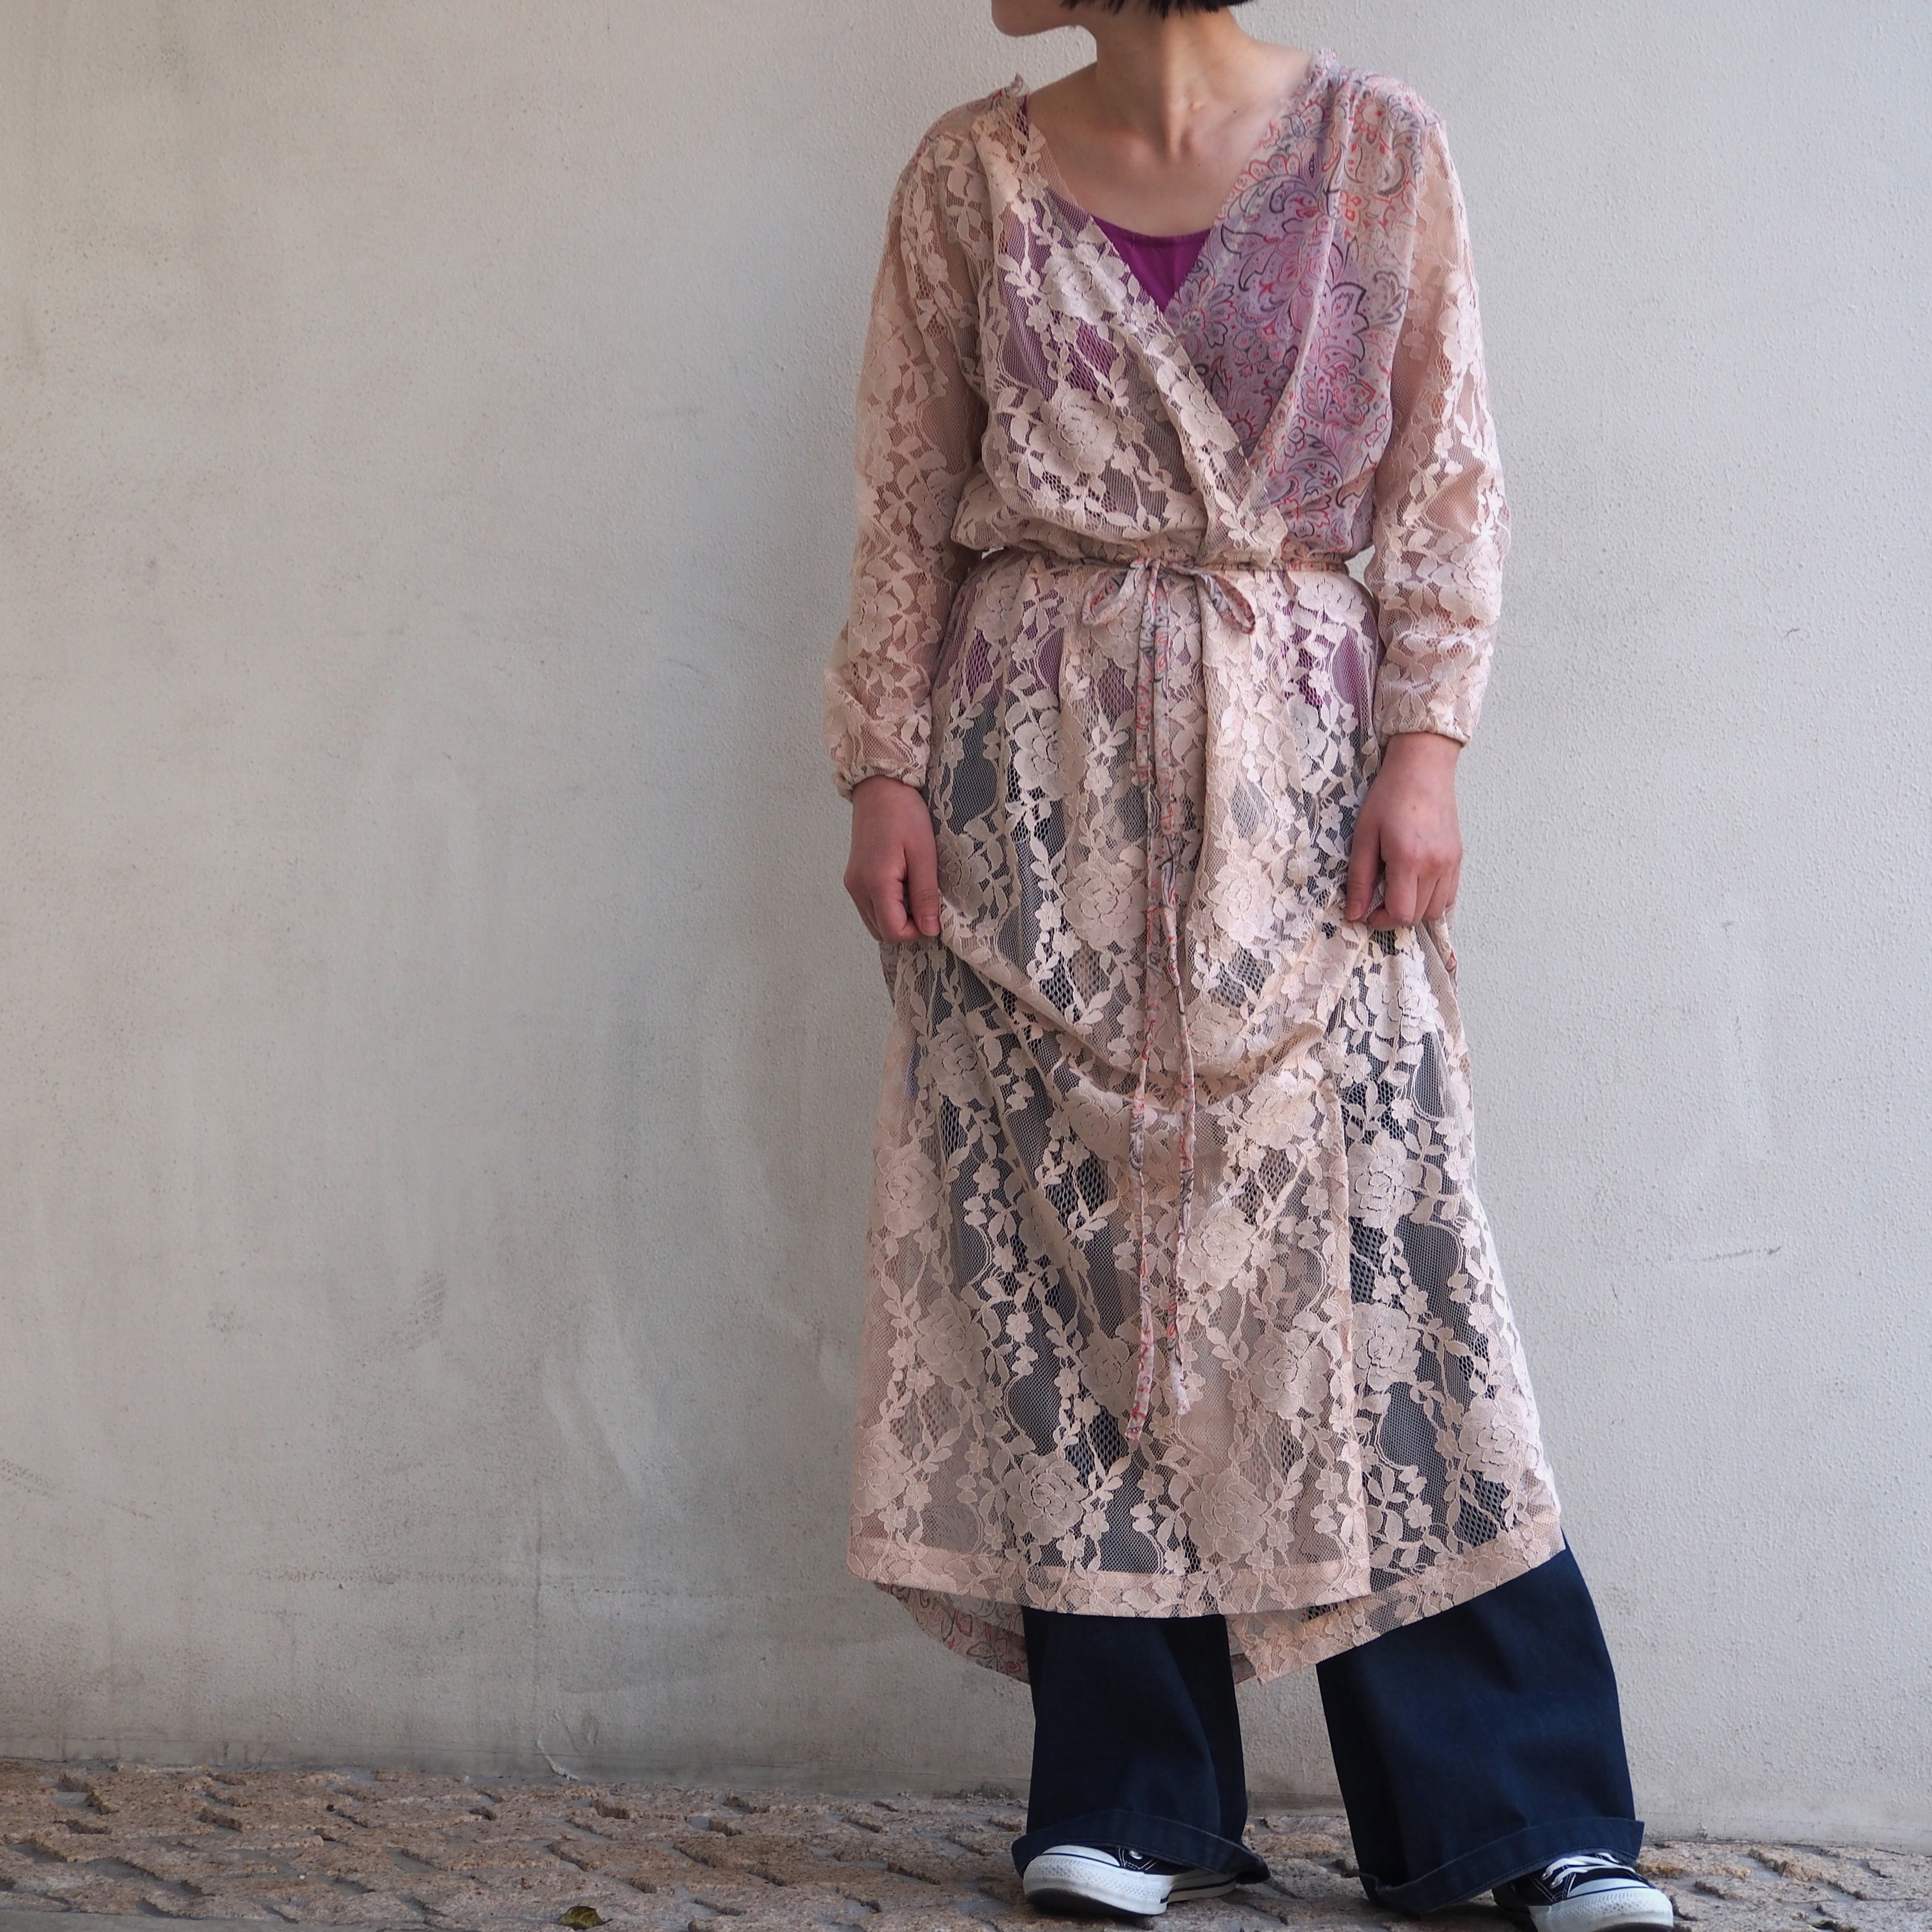 【ethical hippi】tuck gather one piece(lace×pink beige) / 【エシカル ヒッピ】タック ギャザー ワンピース(レース×ピンクベージュ)